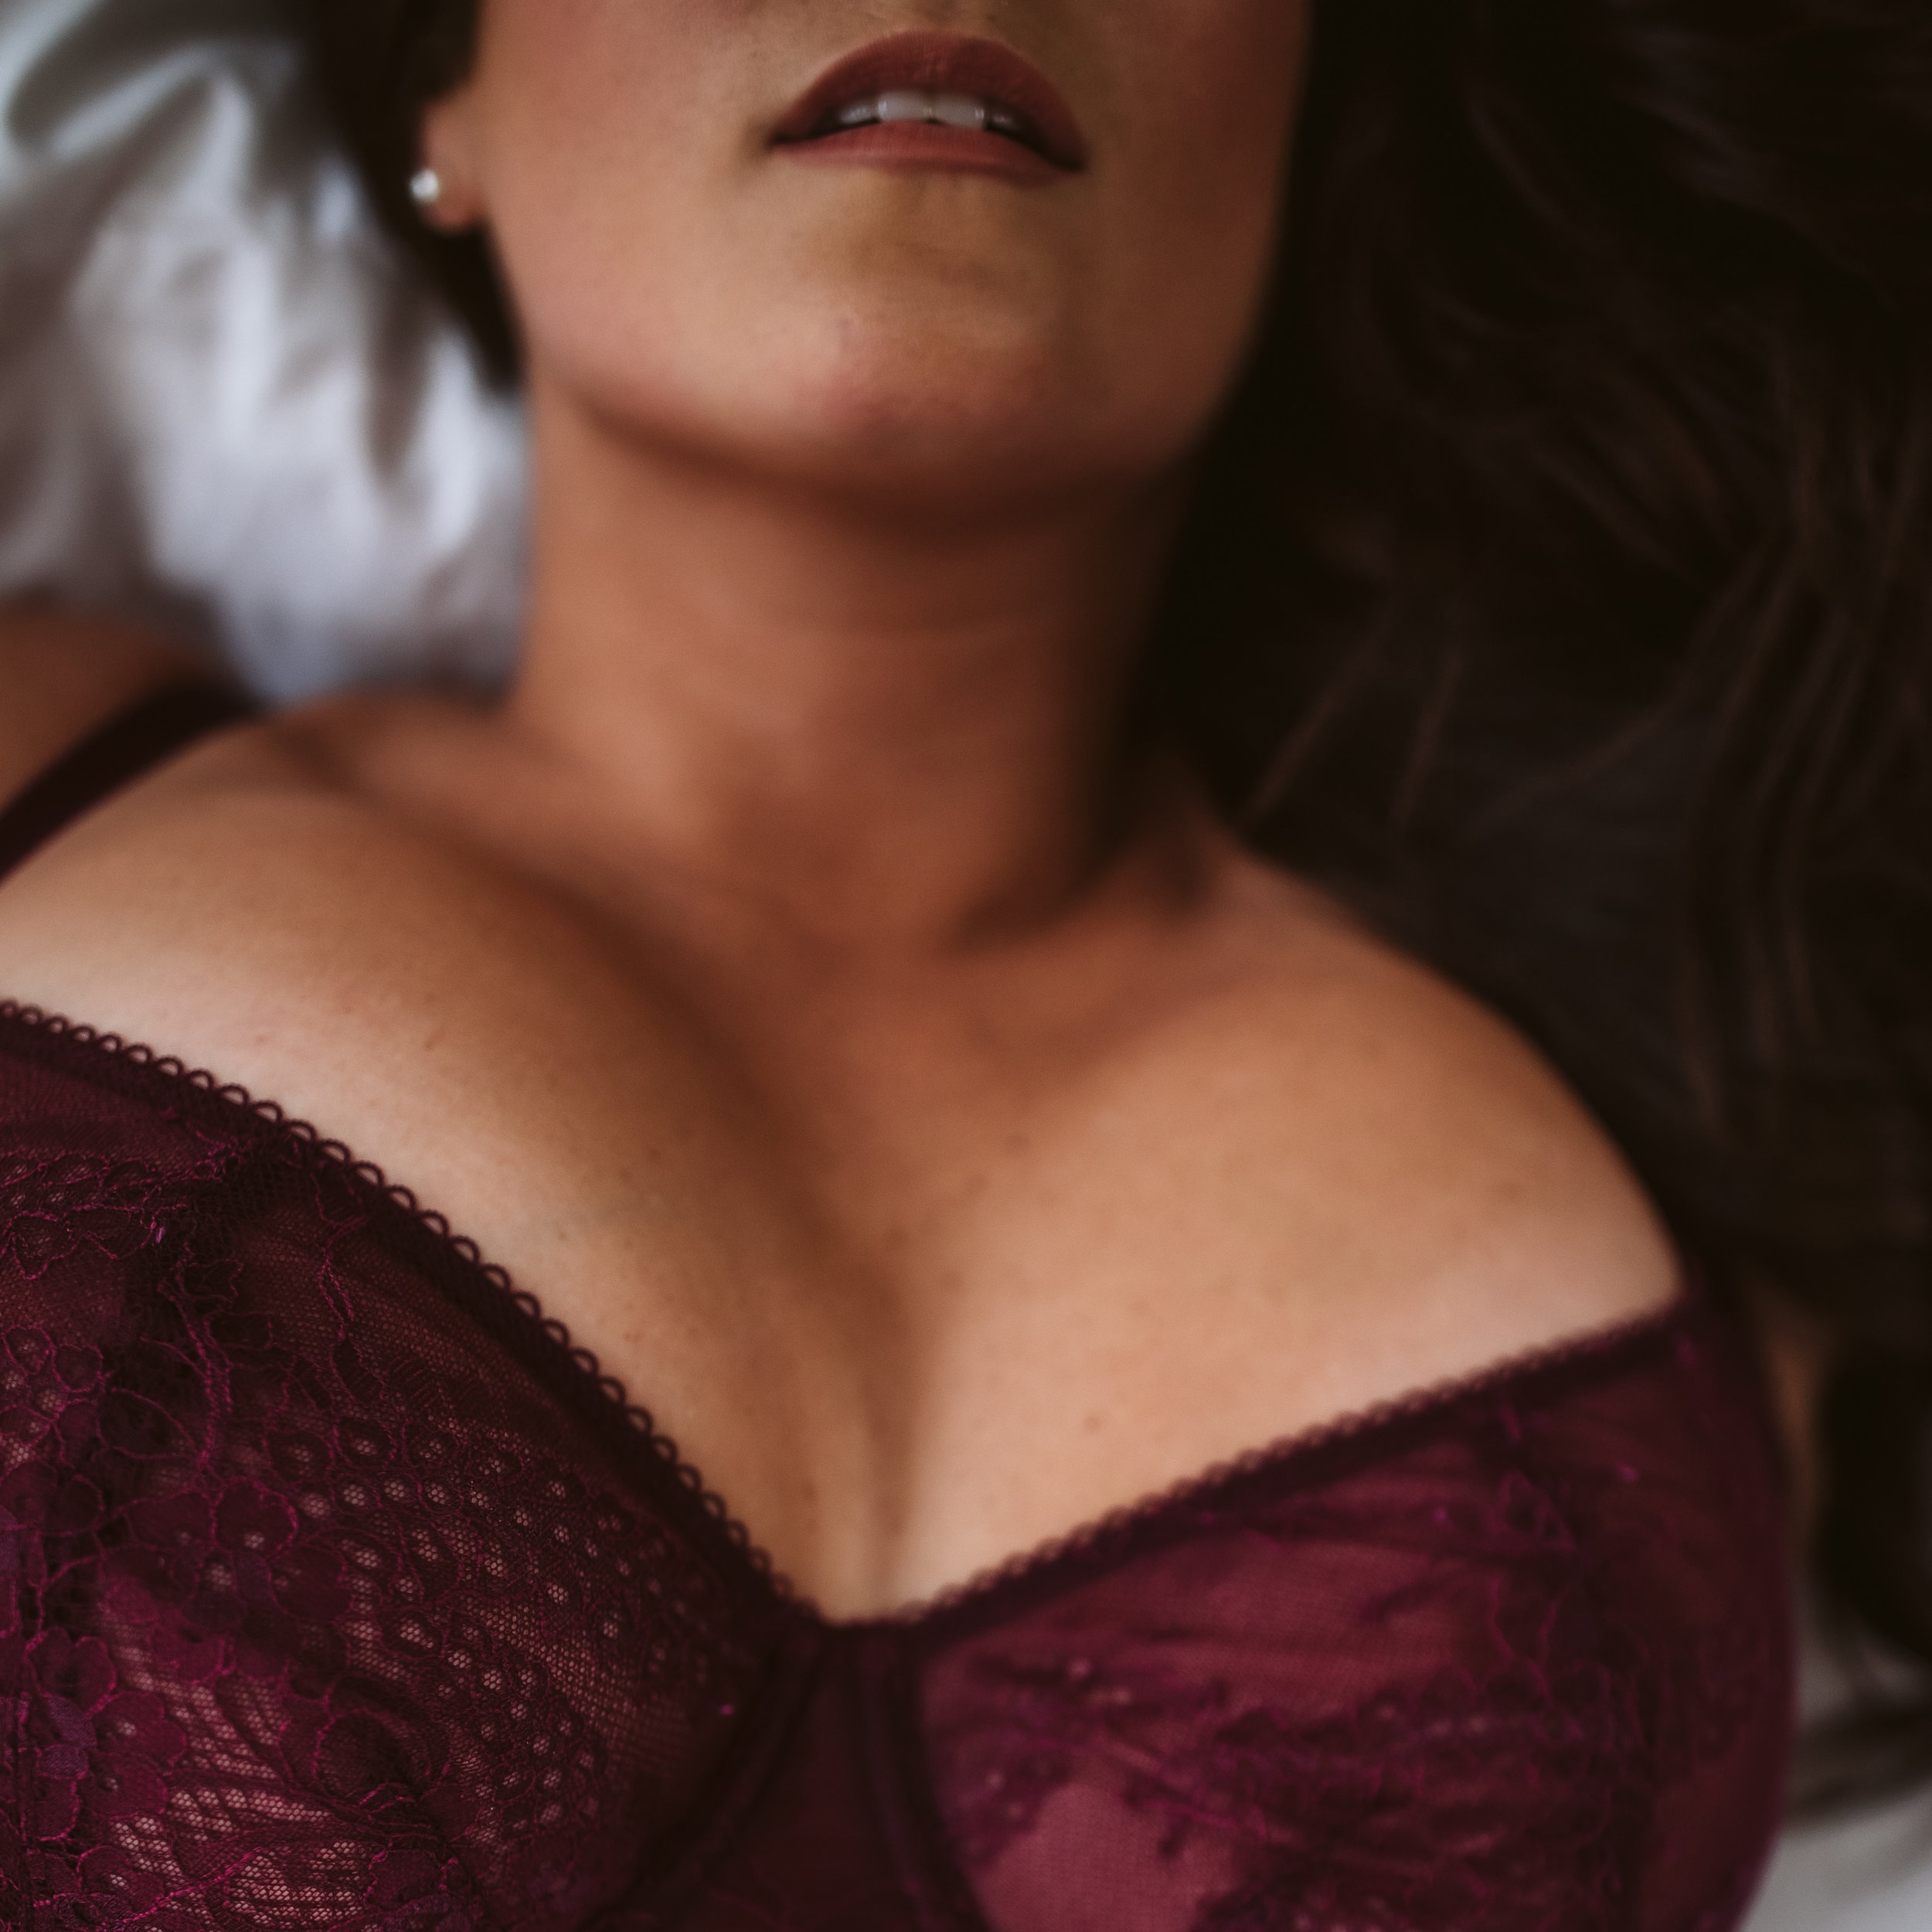 Body-Positive Boudoir $850 - + professional hair & makeup+ mimosas & light snacks+ 1-hour in front of the camera in our private studio+ high-resolution online digital galleryCustomize your boudoir session:+ boudoir video+ heirloom albums+ wooden print boxes+ custom USB drive + canvas or metal wall art prints